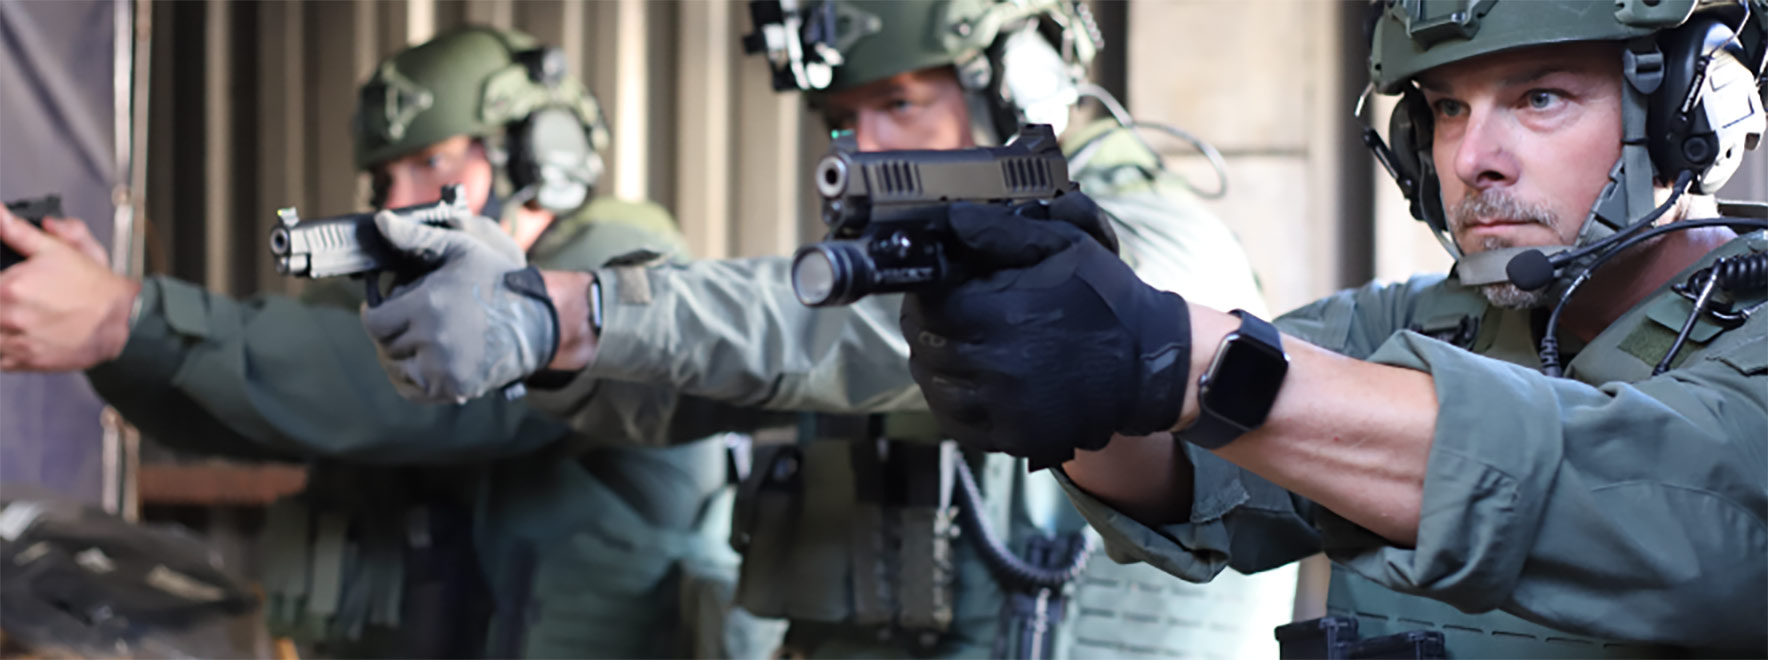 Three men in tactical gear aiming Staccato handguns